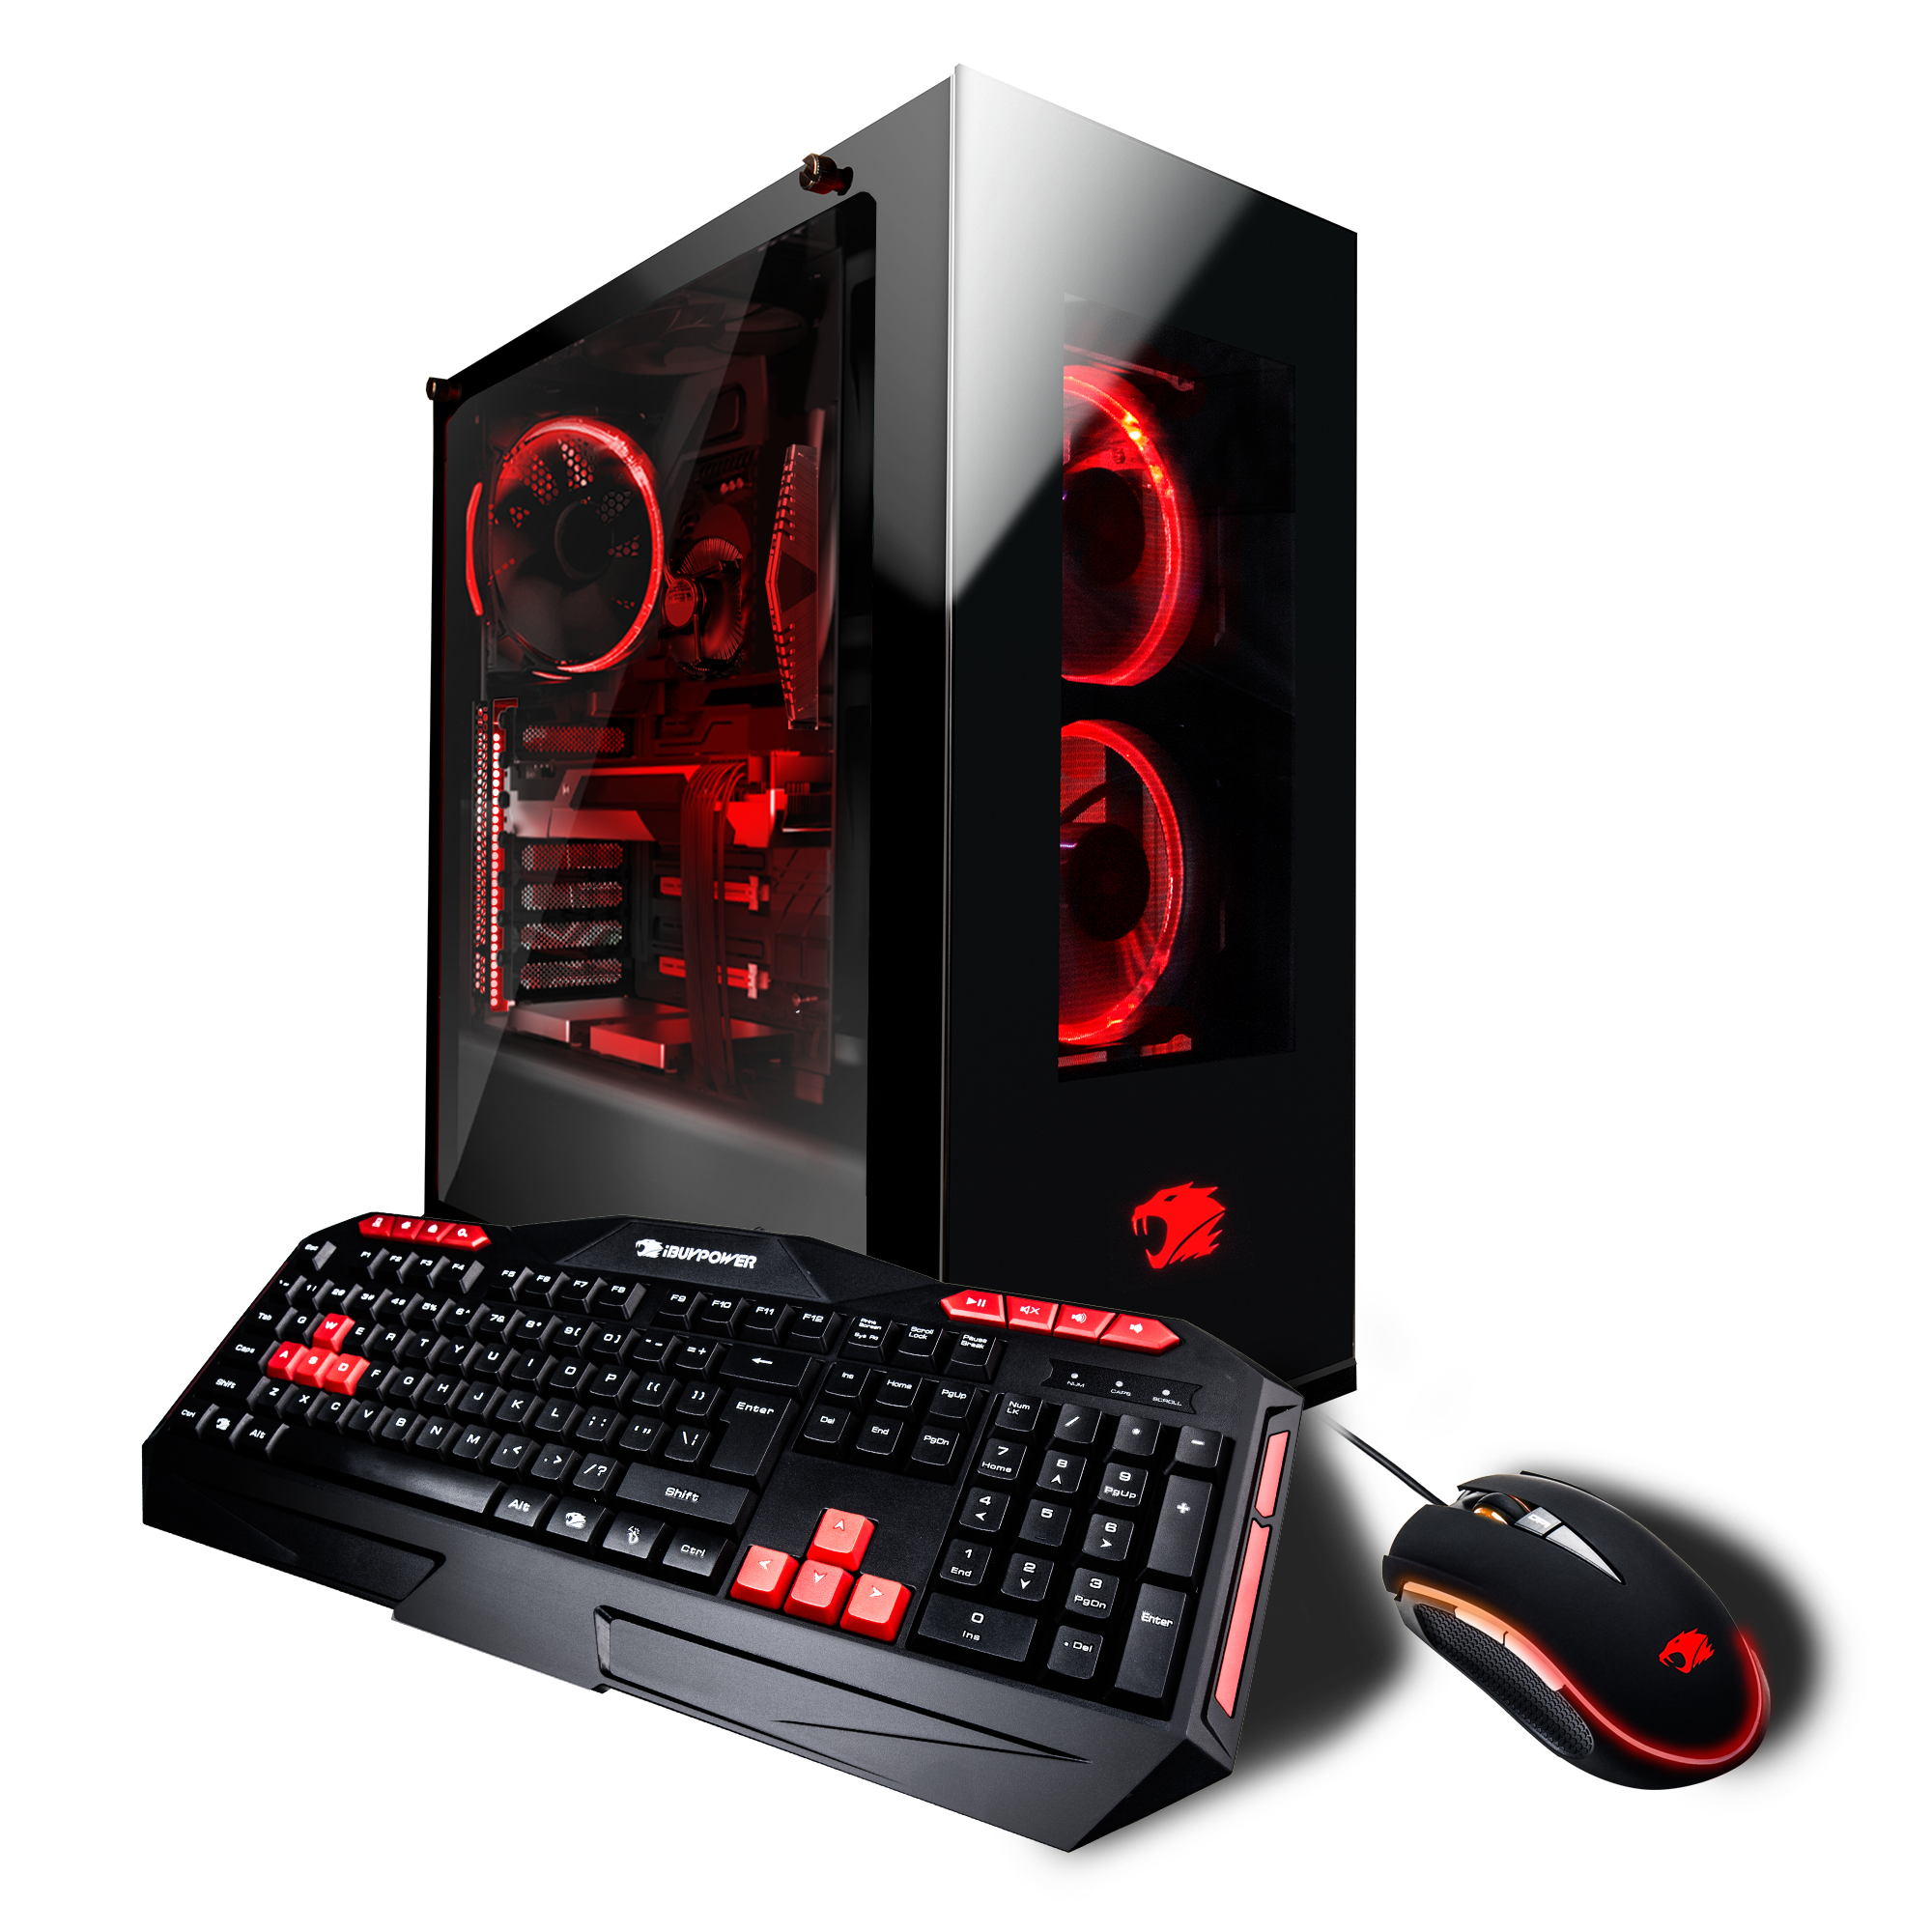 iBUYPOWER WA041i - Gaming Desktop PC - Intel i7 8700 - 16GB DDR4 Memory - NVIDIA GeForce RTX 2080 8GB - 1TB Hard Drive - 240GB SD -(No Monitor Included)